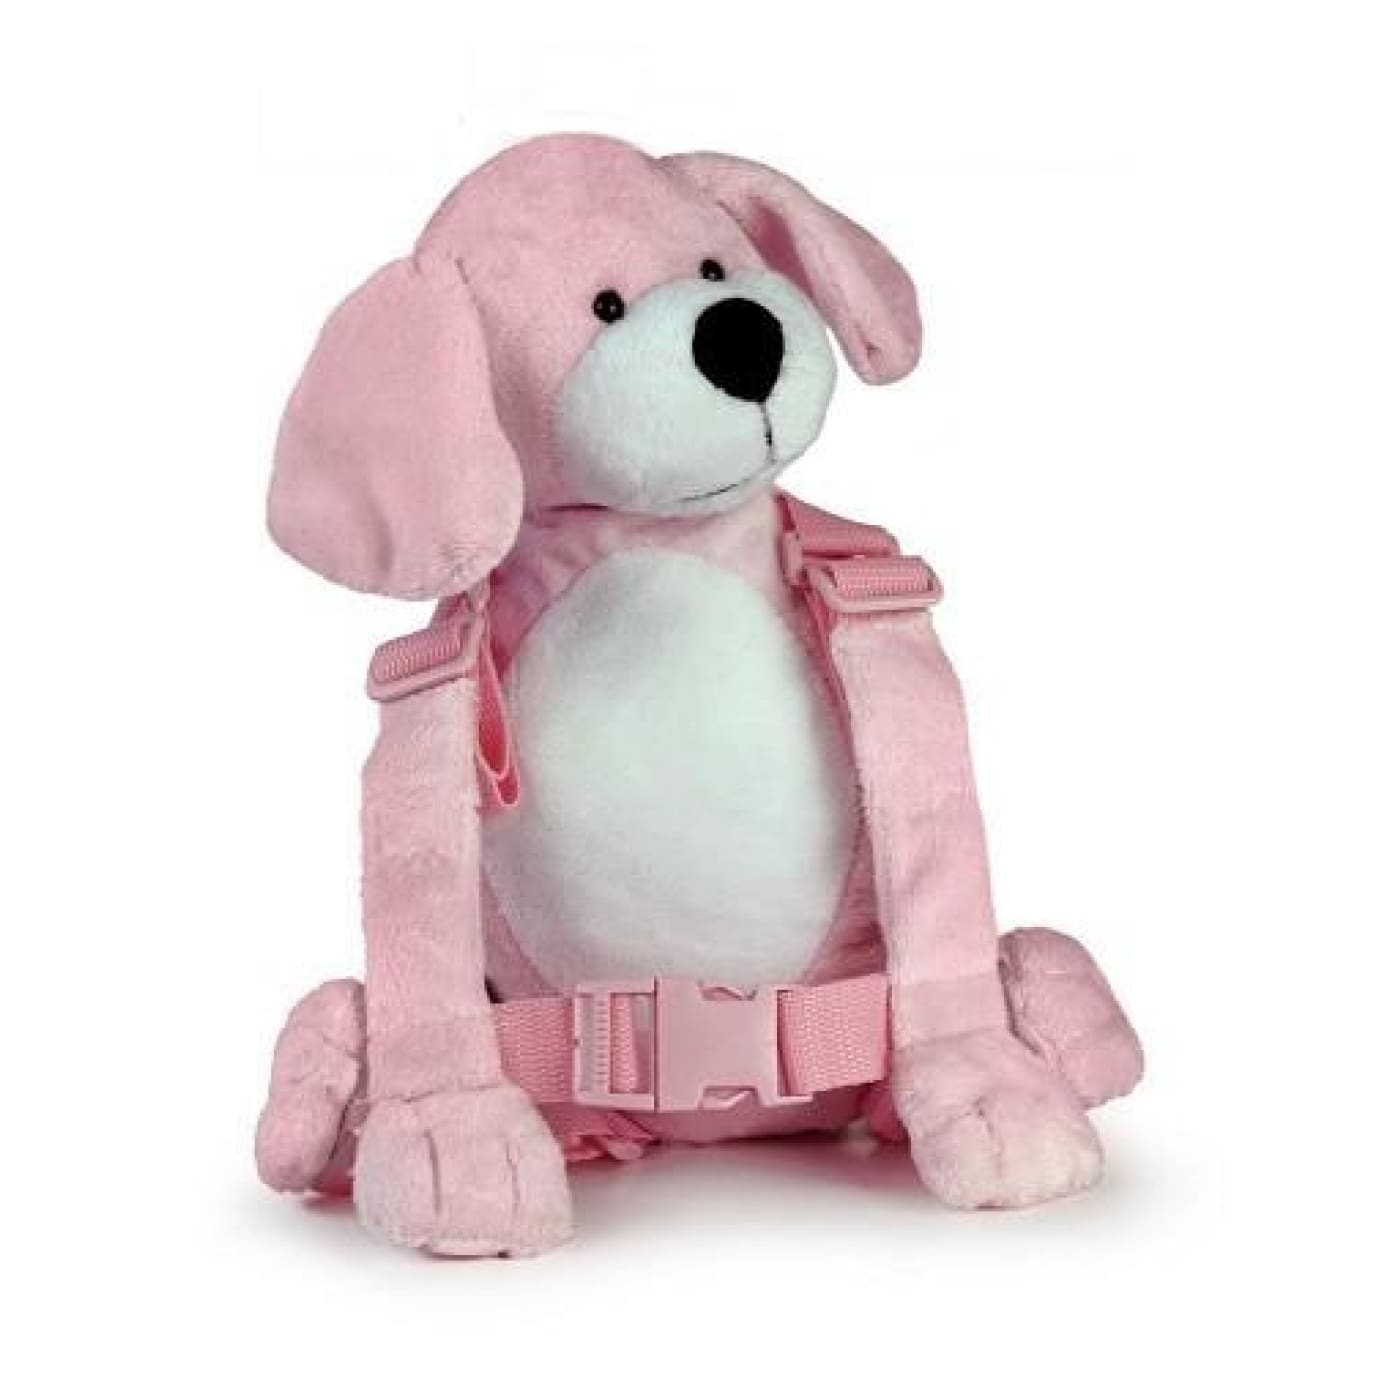 Playette 2 in 1 Harness Buddy - Pink Puppy - ON THE GO - SAFETY HARNESSES